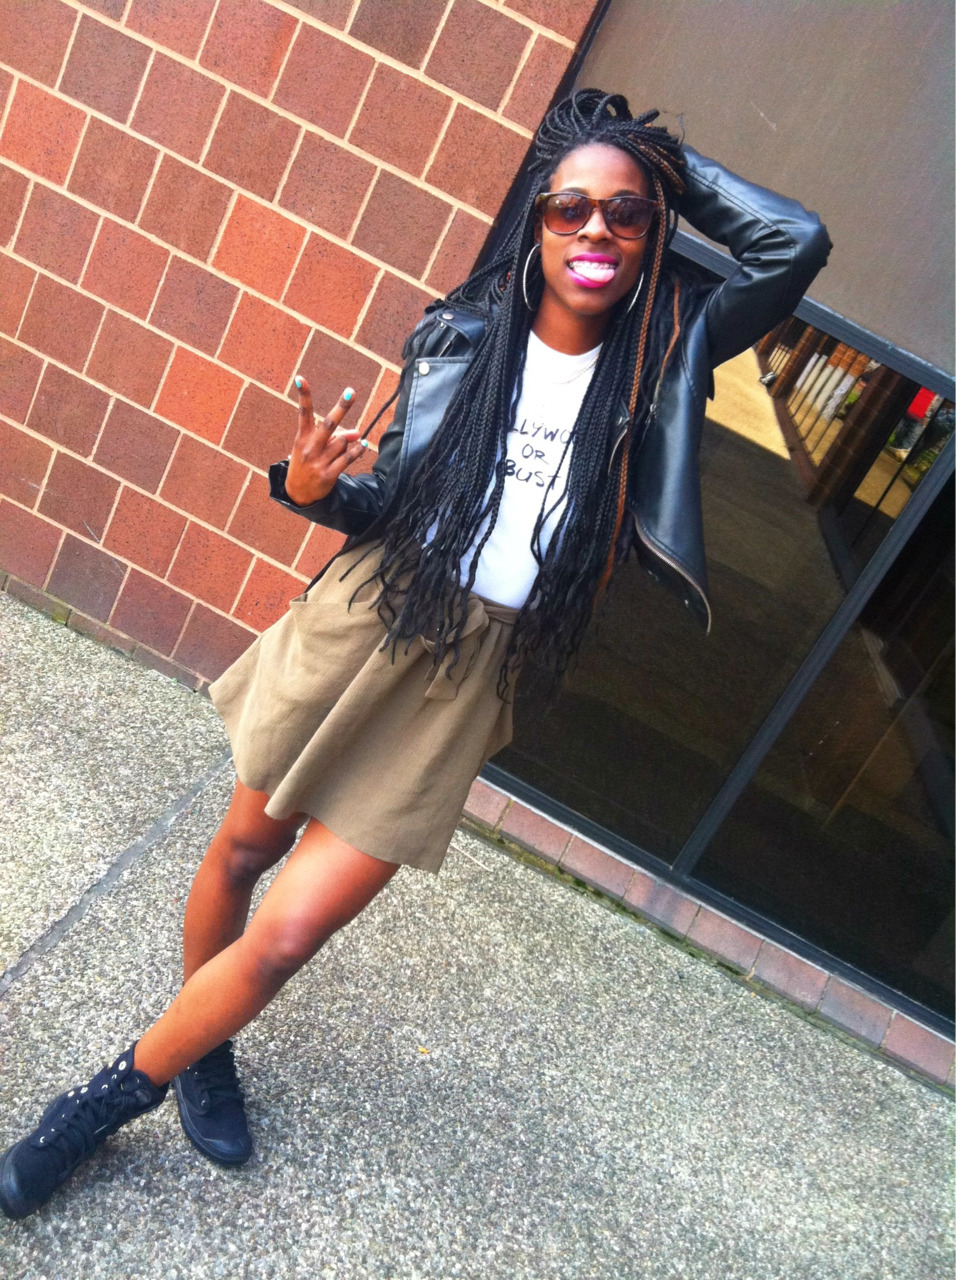 flyestfemales Frenchii : Earlier … (Taken with Instragram) http://frenchswagg.tumblr.com